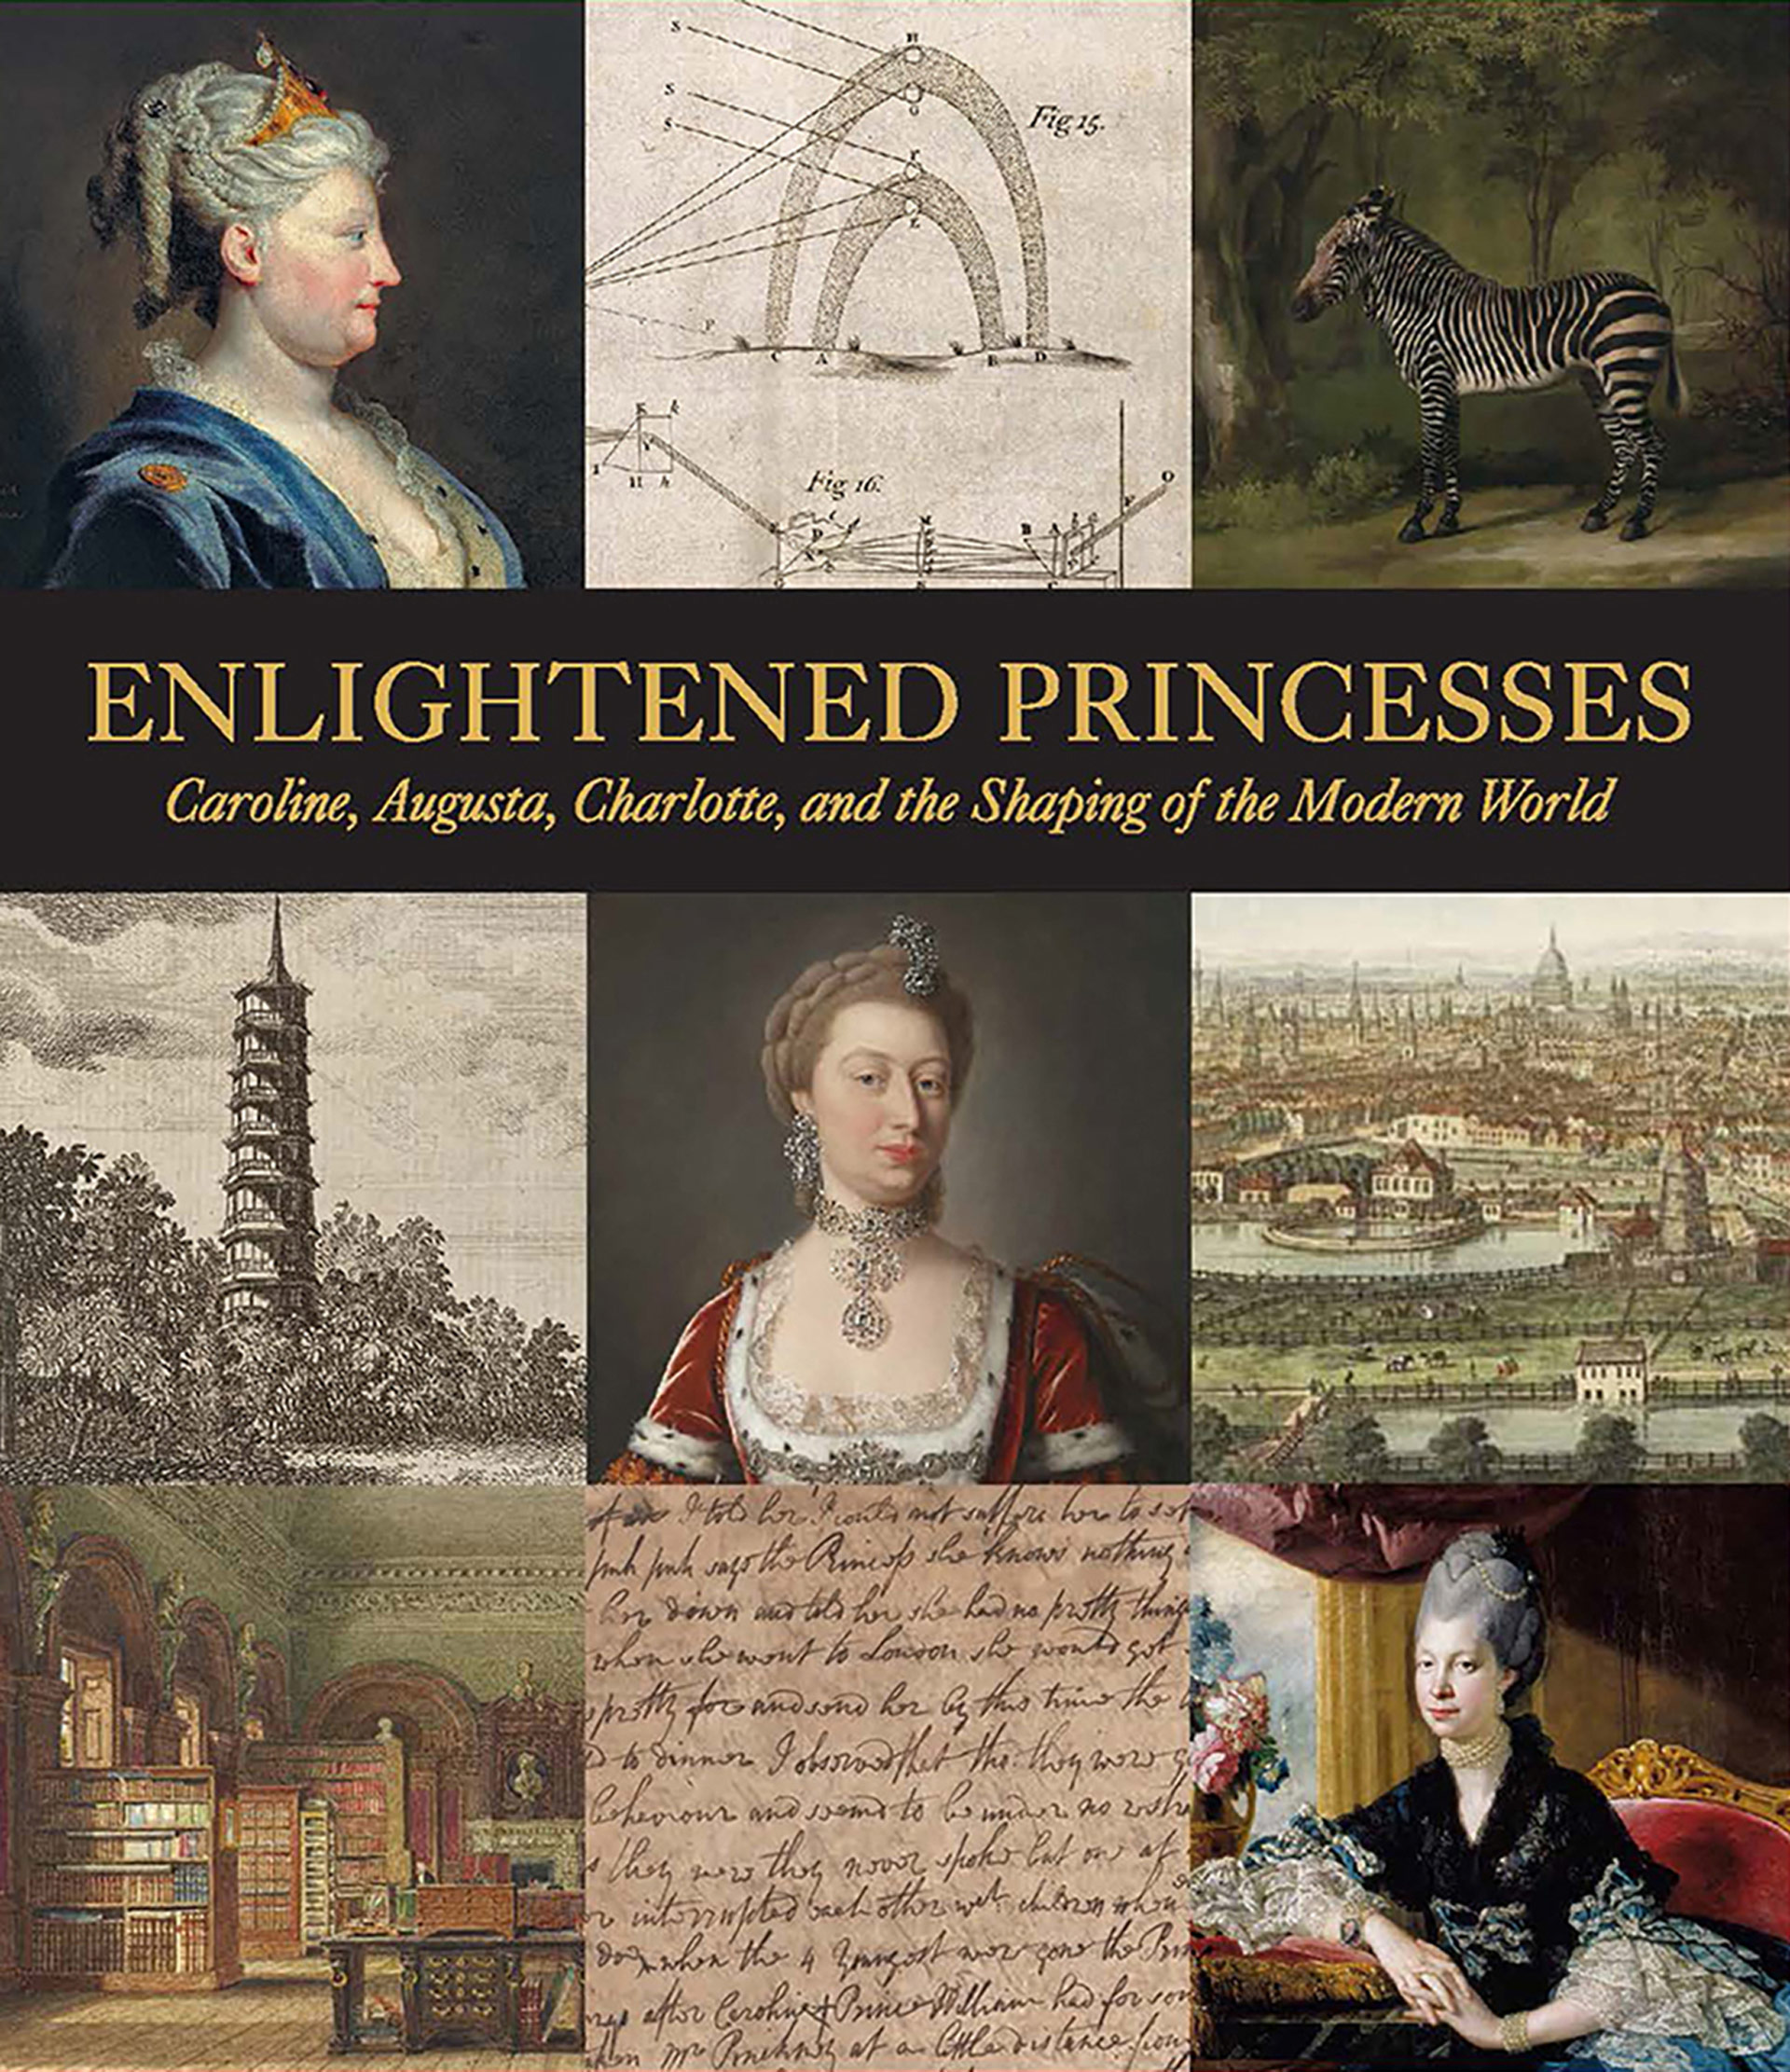 Cover, Enlightened Princesses: Caroline, Augusta, Charlotte, and the Shaping of the Modern World